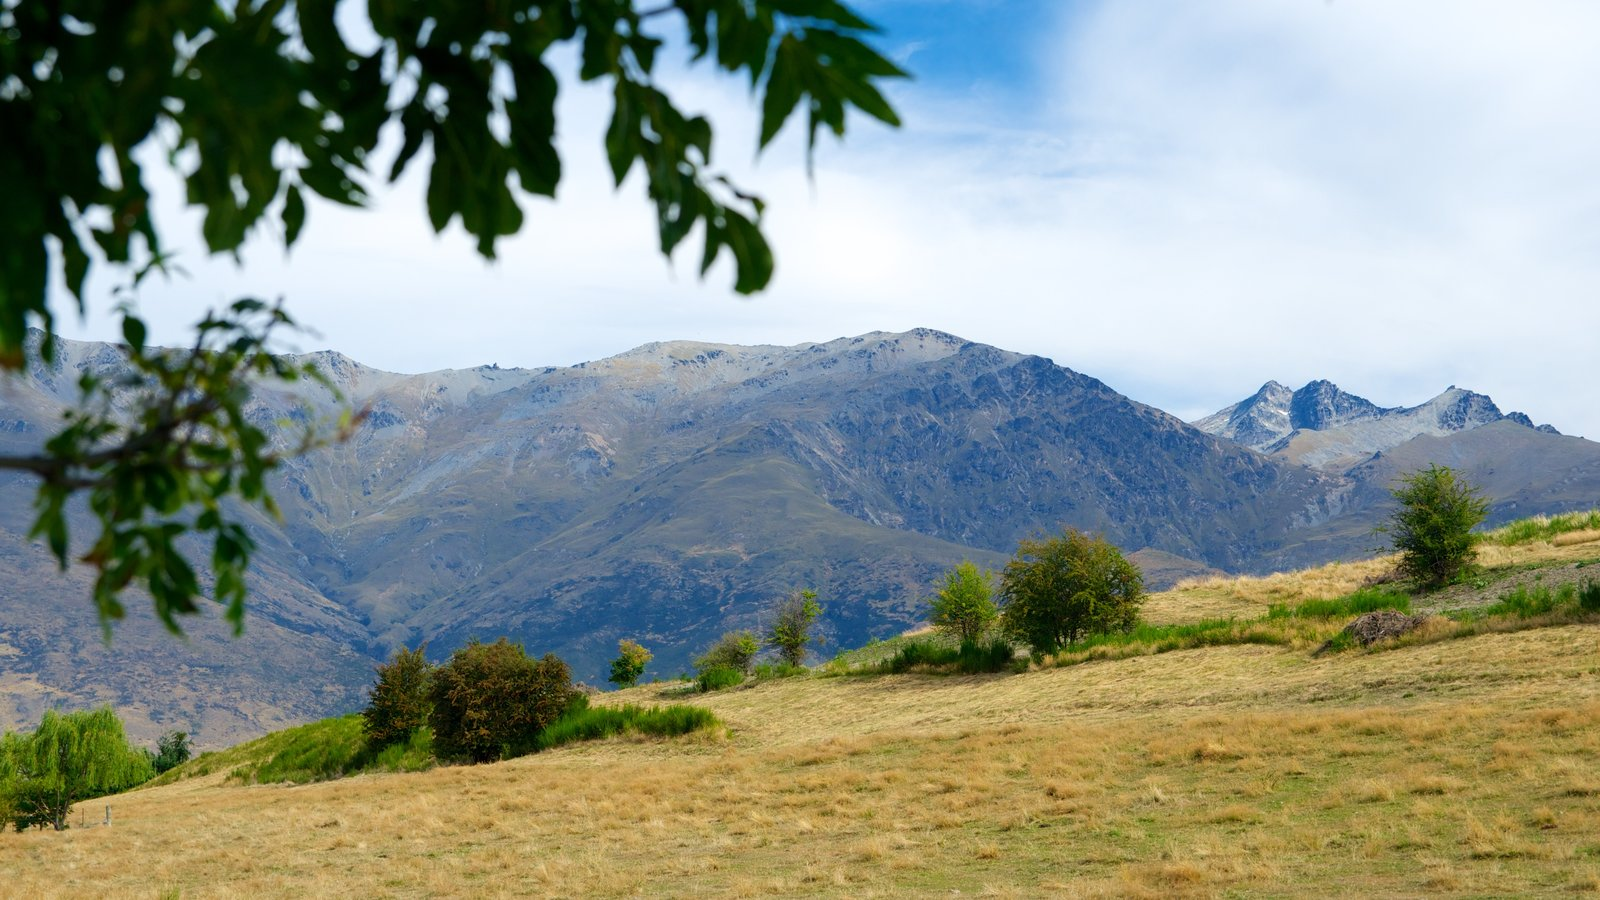 Arrowtown which includes mountains and landscape views